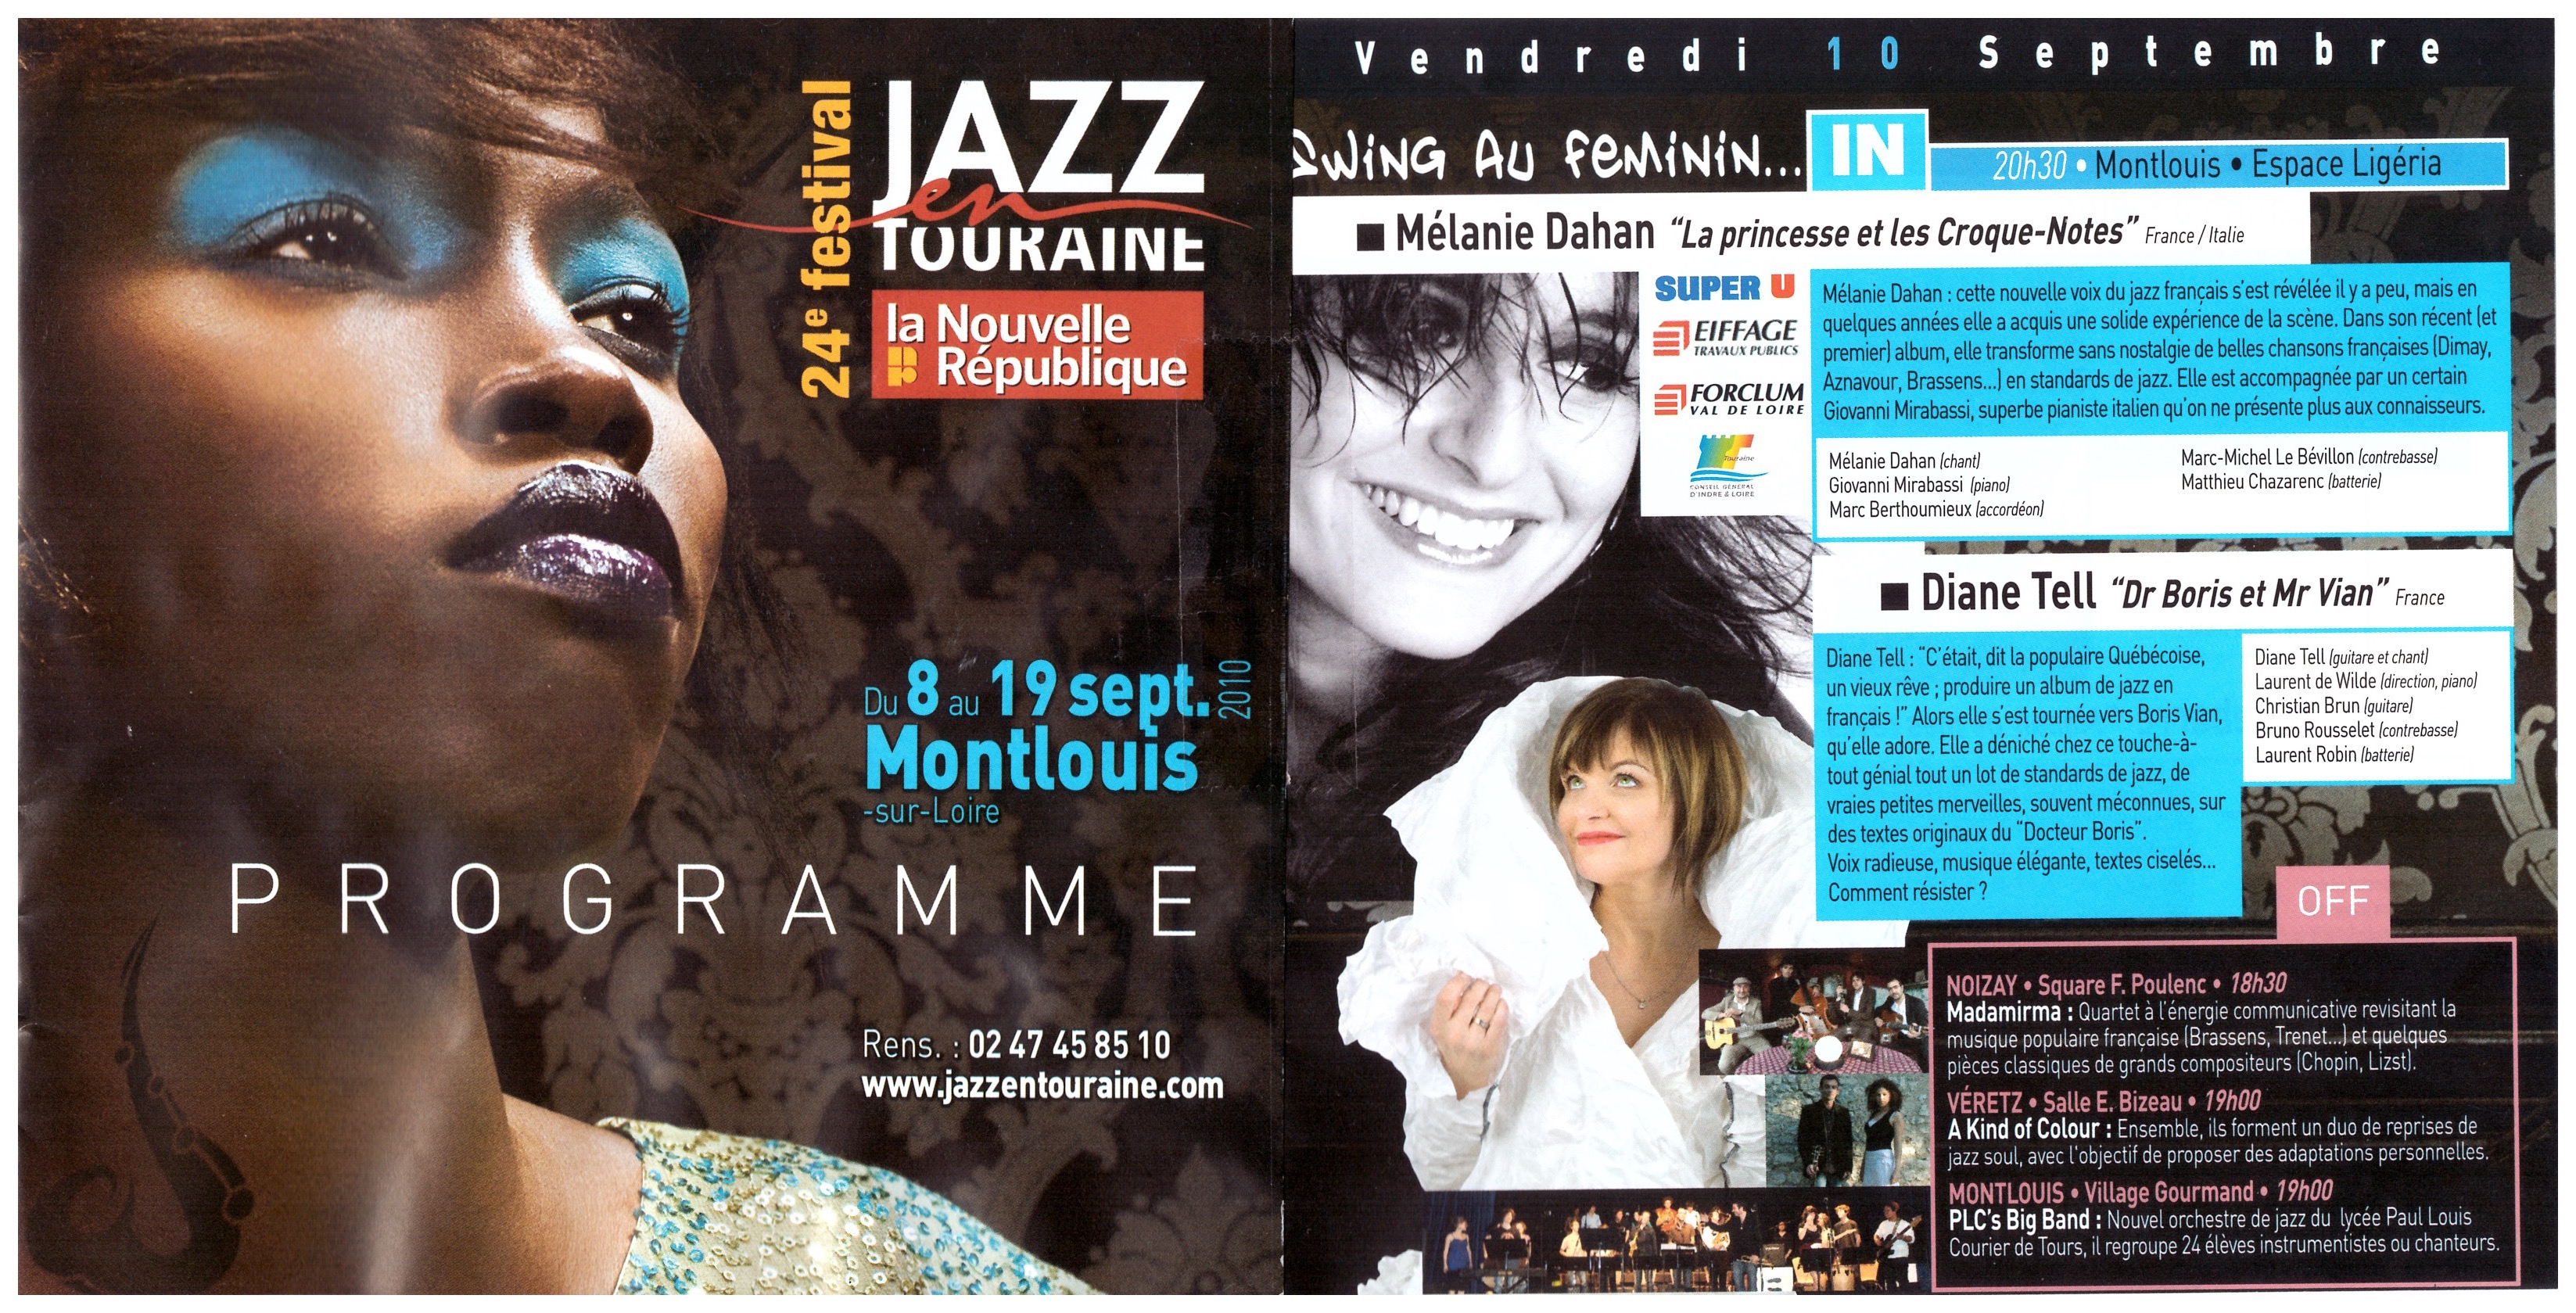 Festival Jazz en touraine